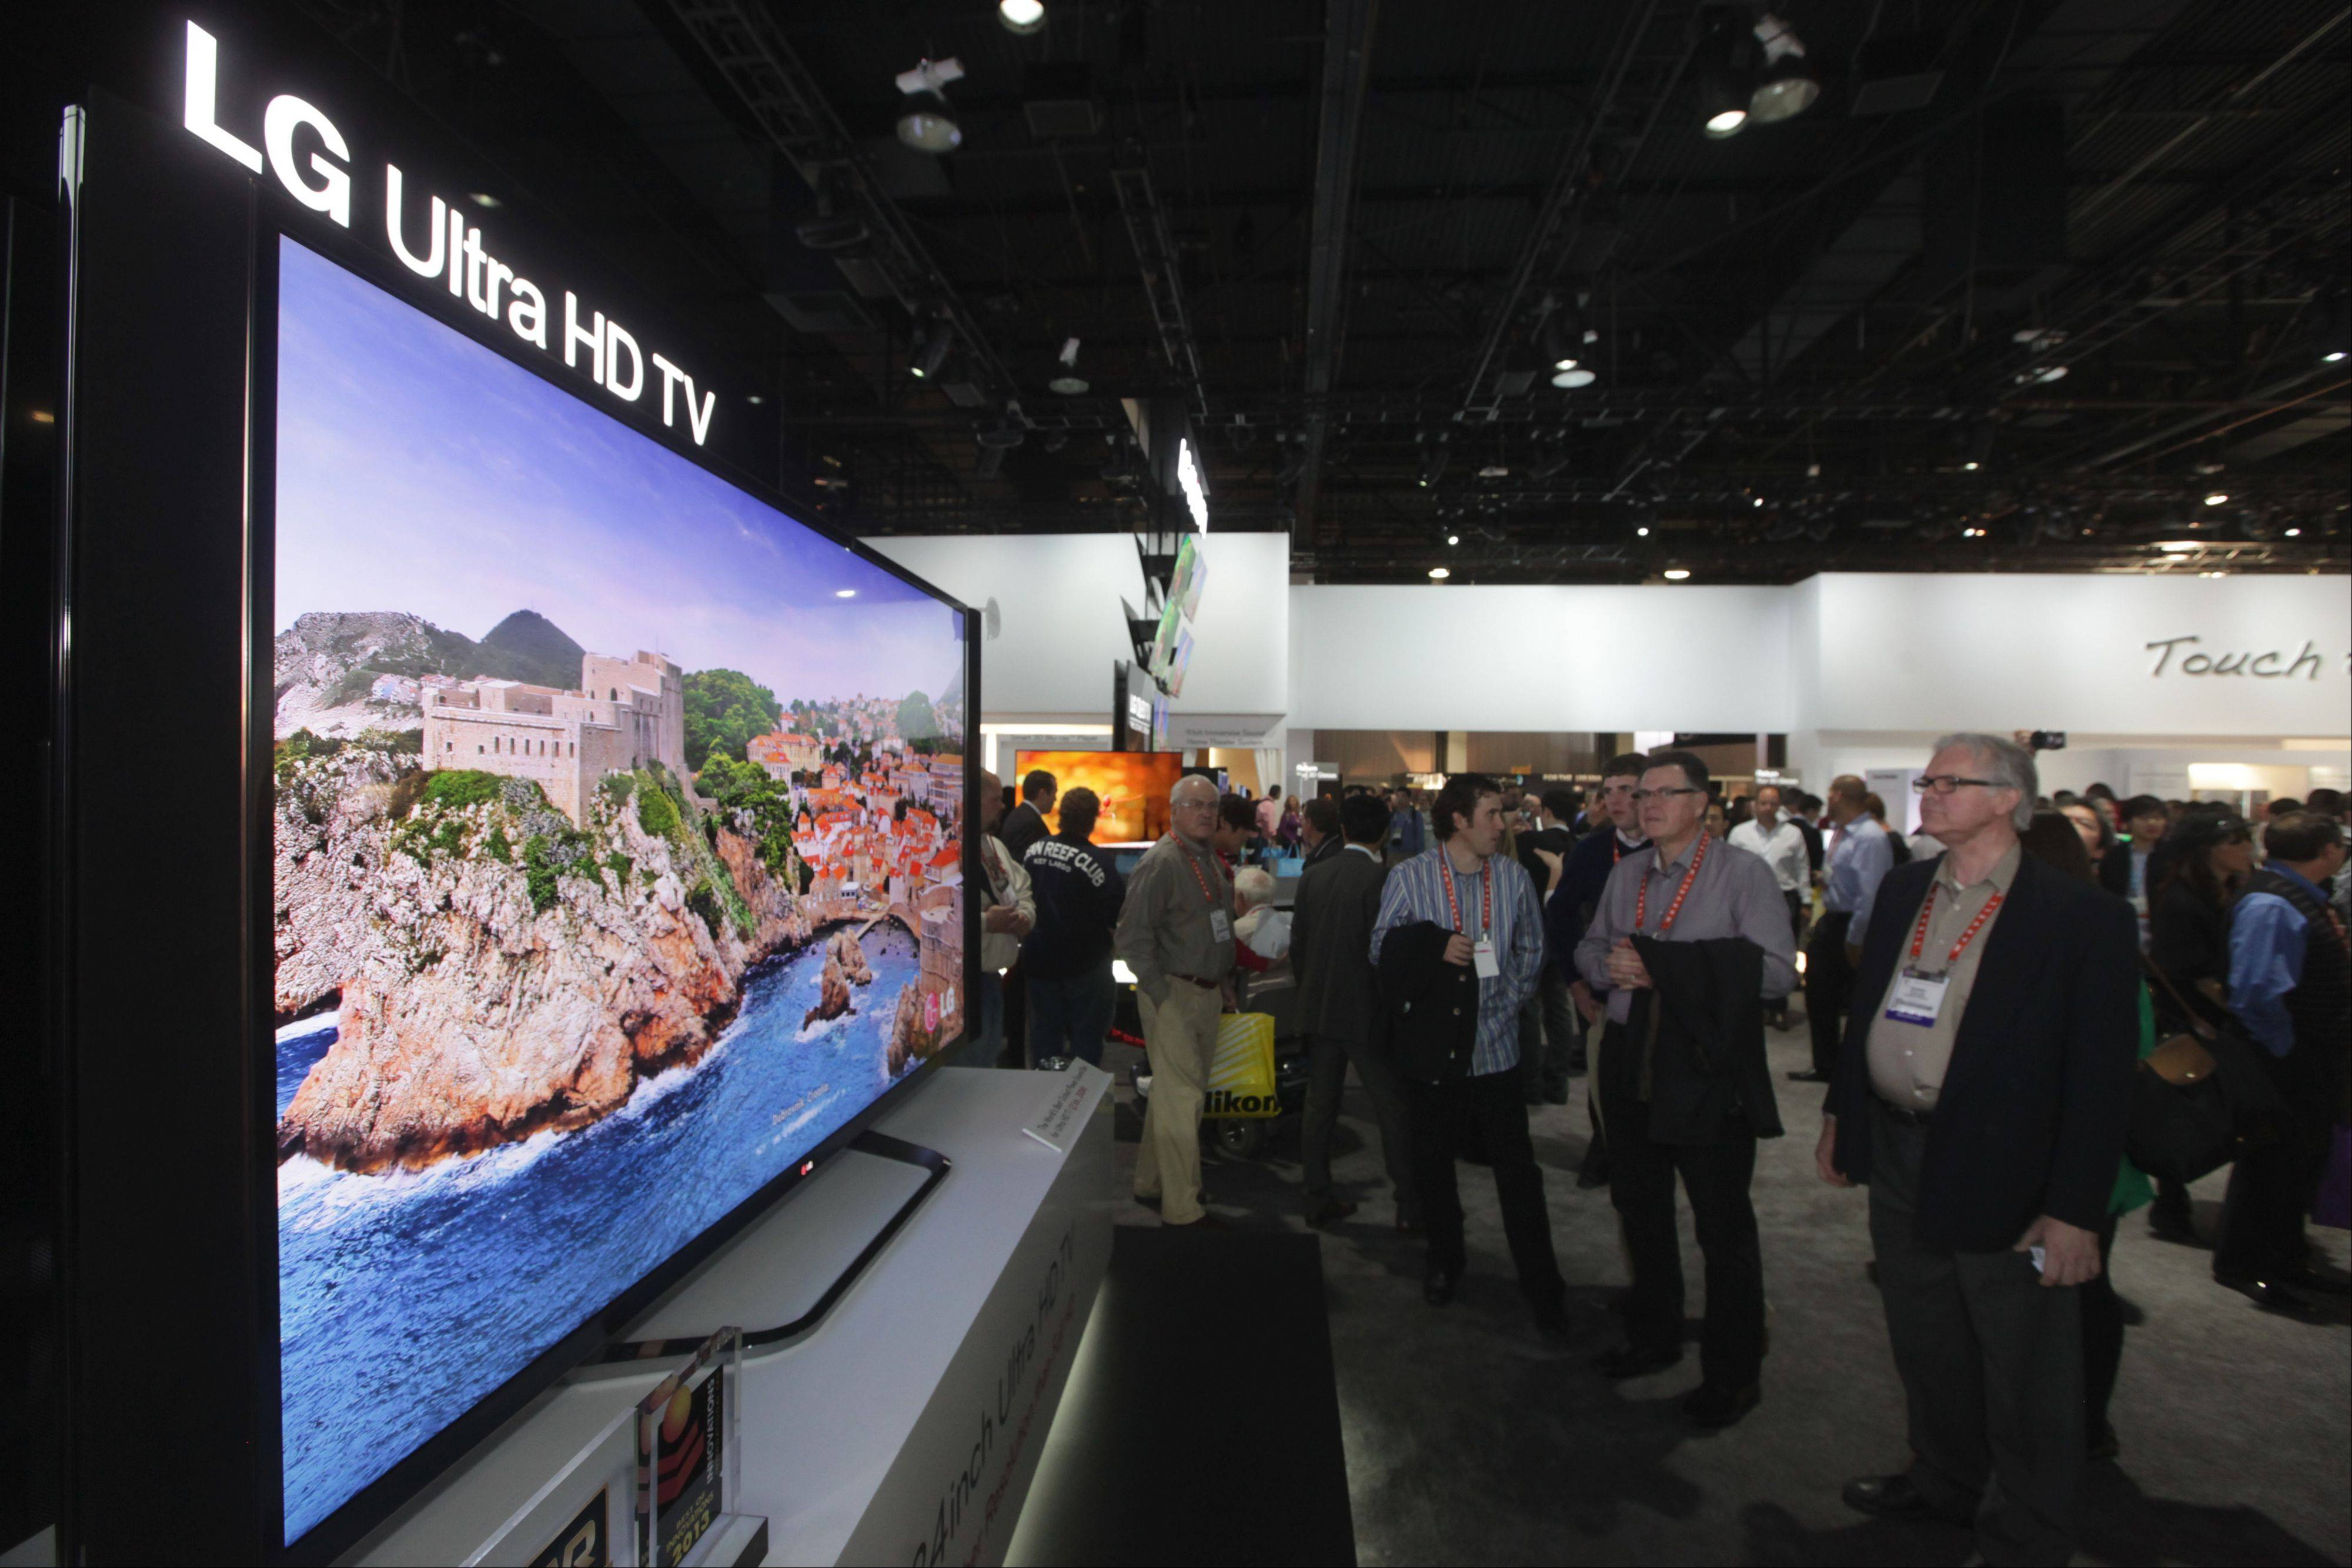 The new LG Ultra HD TV with an 84-inch screen won an award at the recent Consumer Electronics Show in Las Vegas and is now being sold exclusively at Abt.